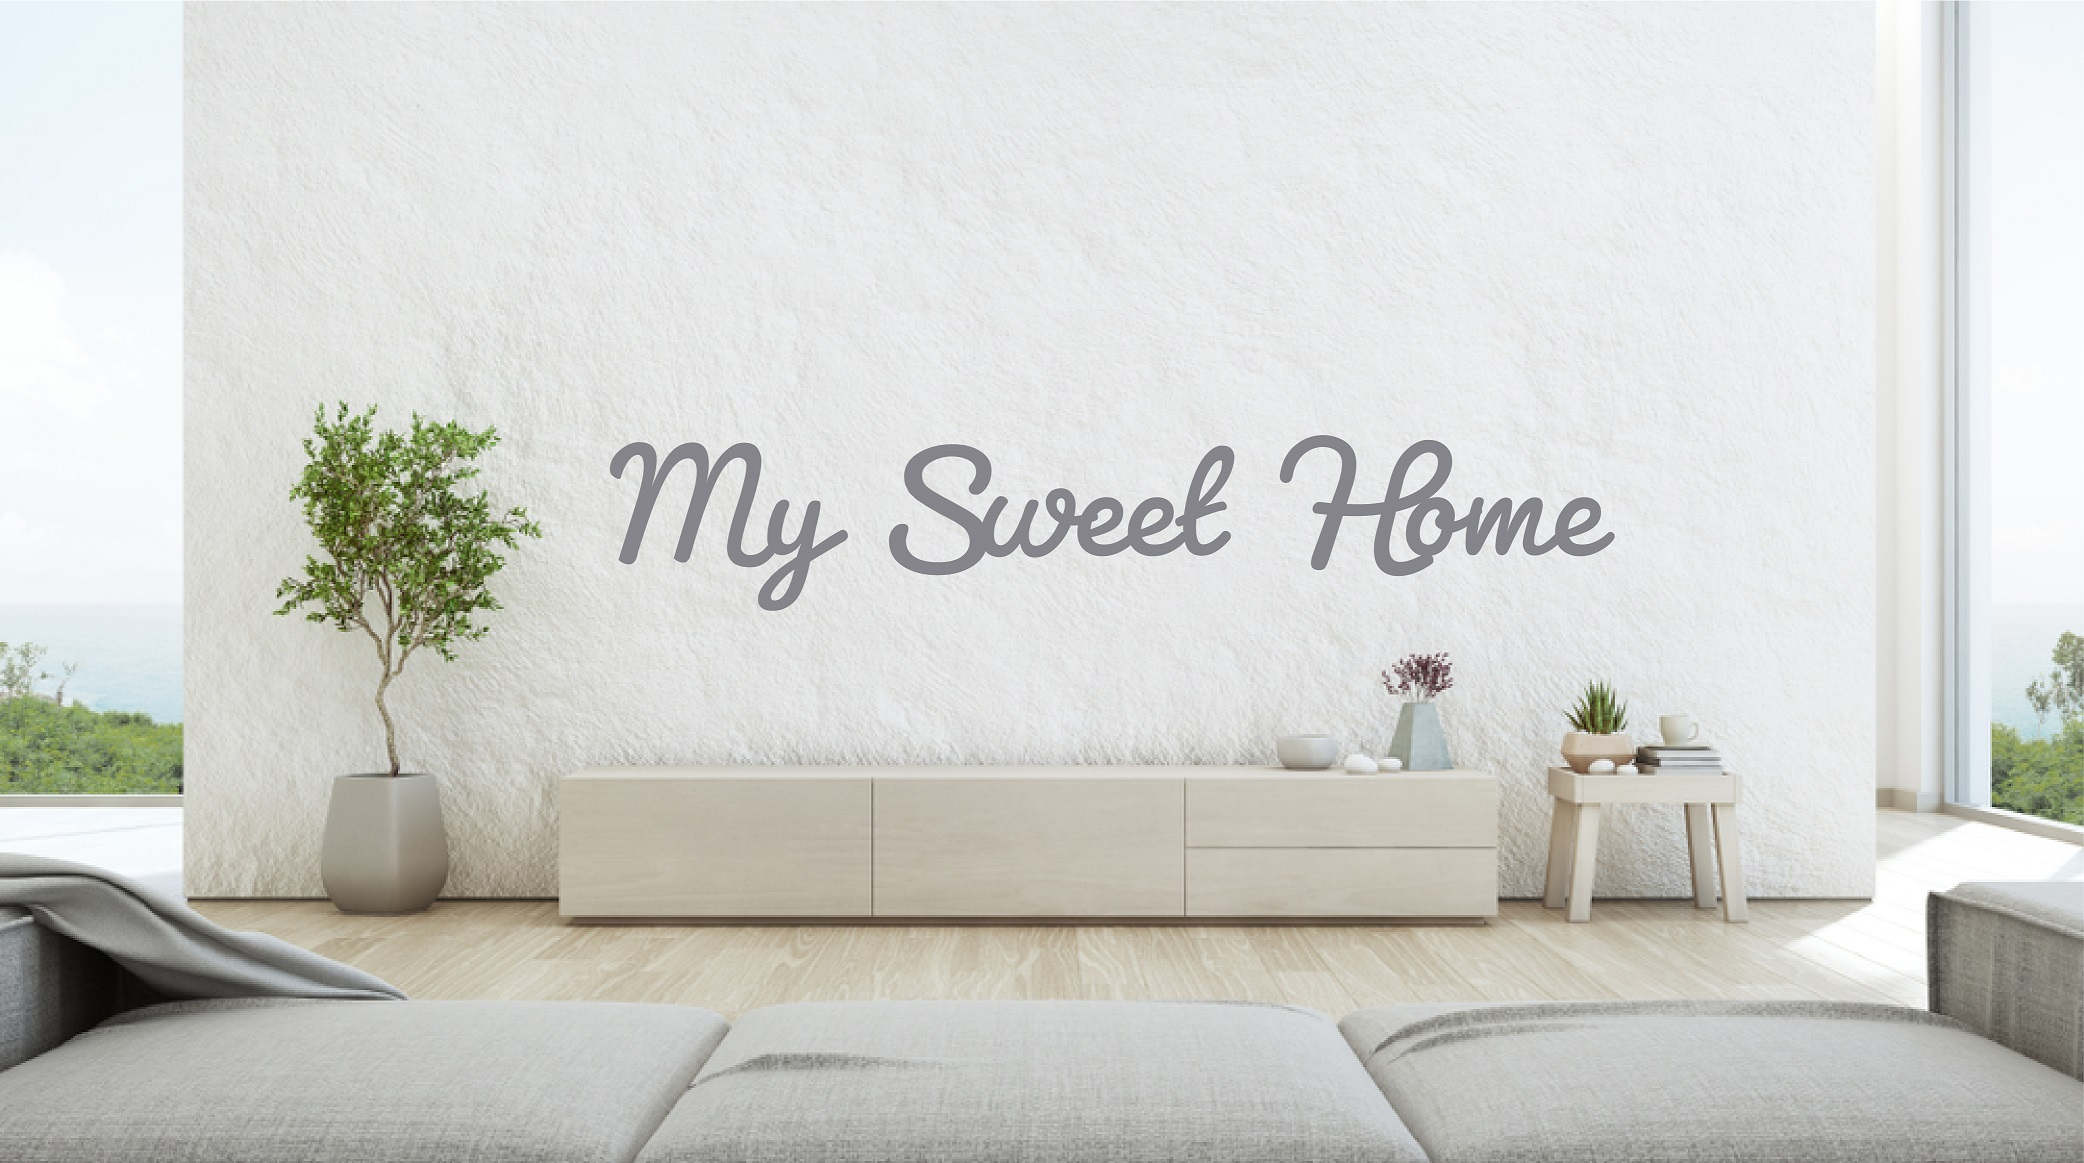 Phrase My sweet home